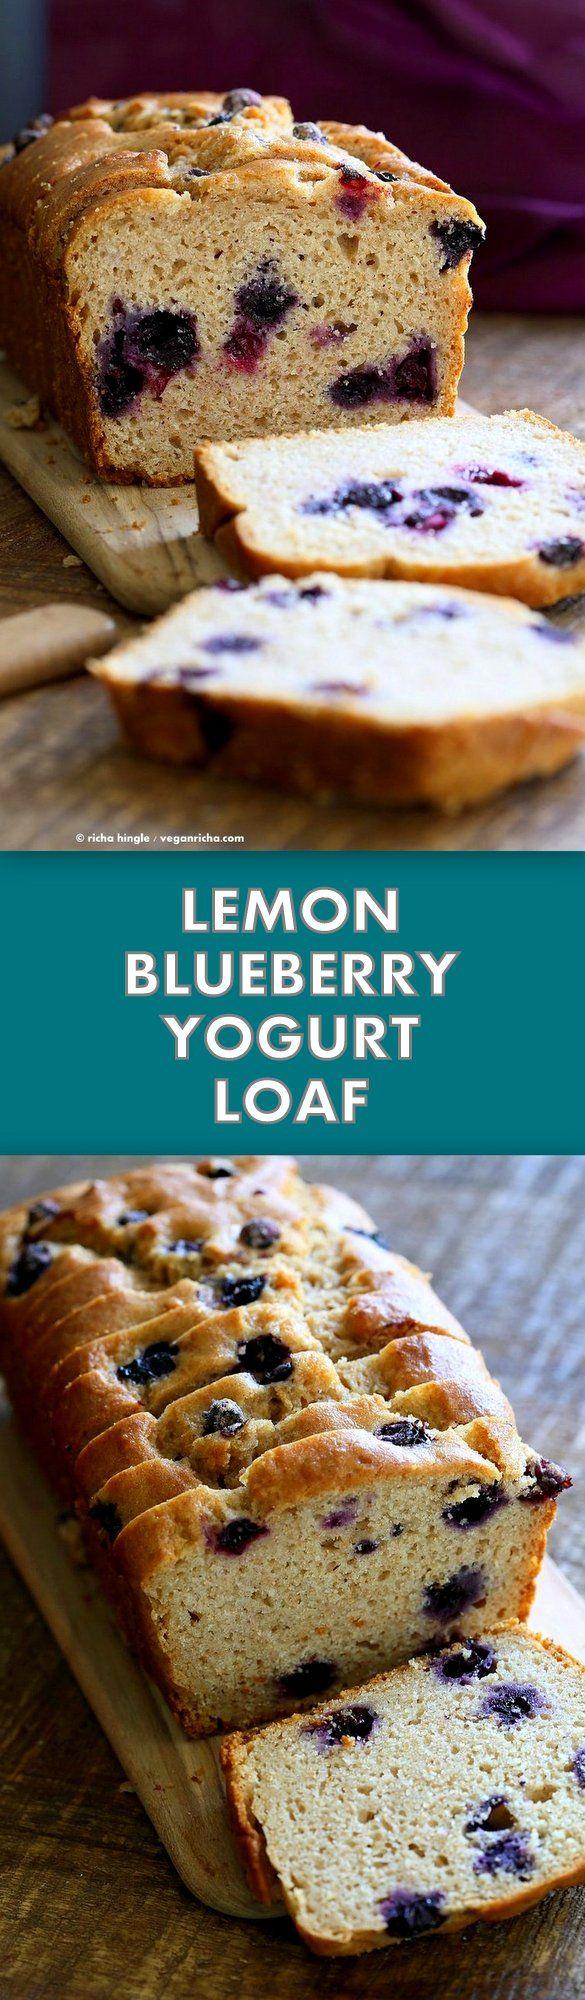 Lemon Blueberry Cake. This zesty Blueberry Lemon Pound Cake is dense and full of flavor. Use other berries in this Vegan Pound Cake Recipe. Non Dairy Yogurt Pound Cake Loaf with lemon and blueberries. 15 min prep and done. | VeganRicha.com